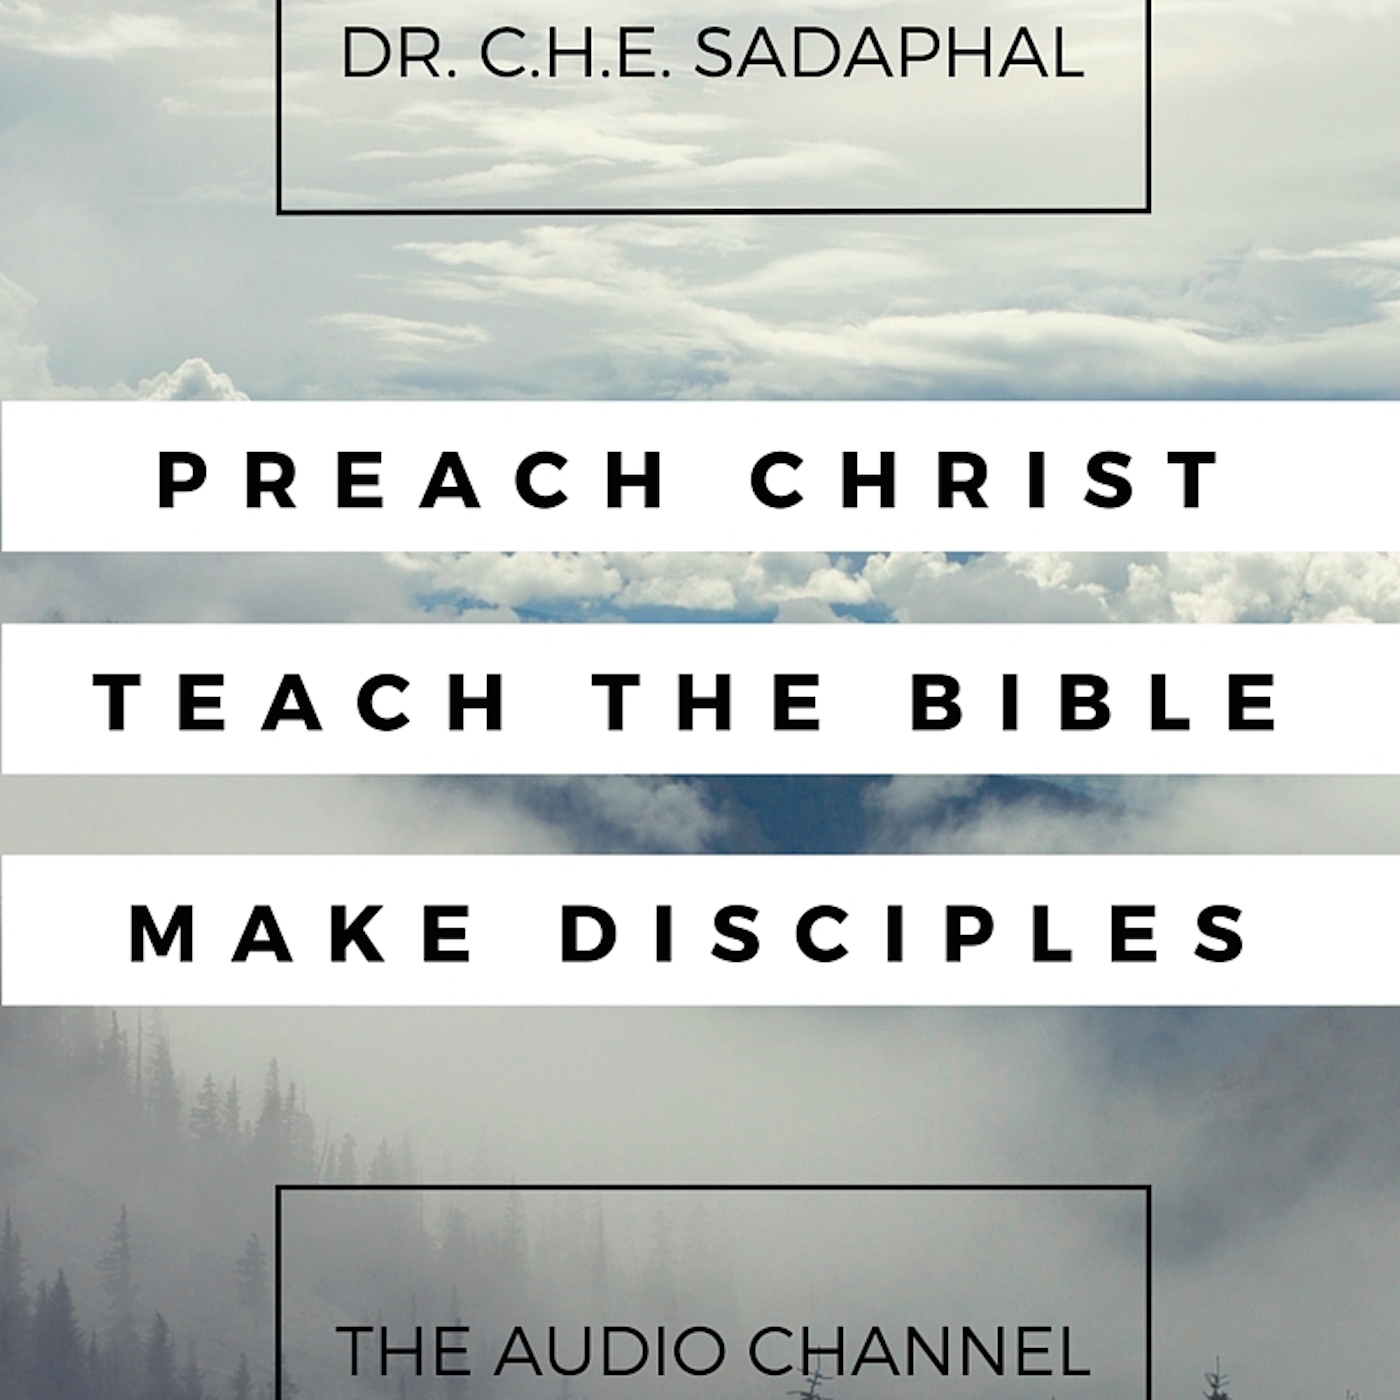 Preaching Christ with Dr. C. H. E. Sadaphal